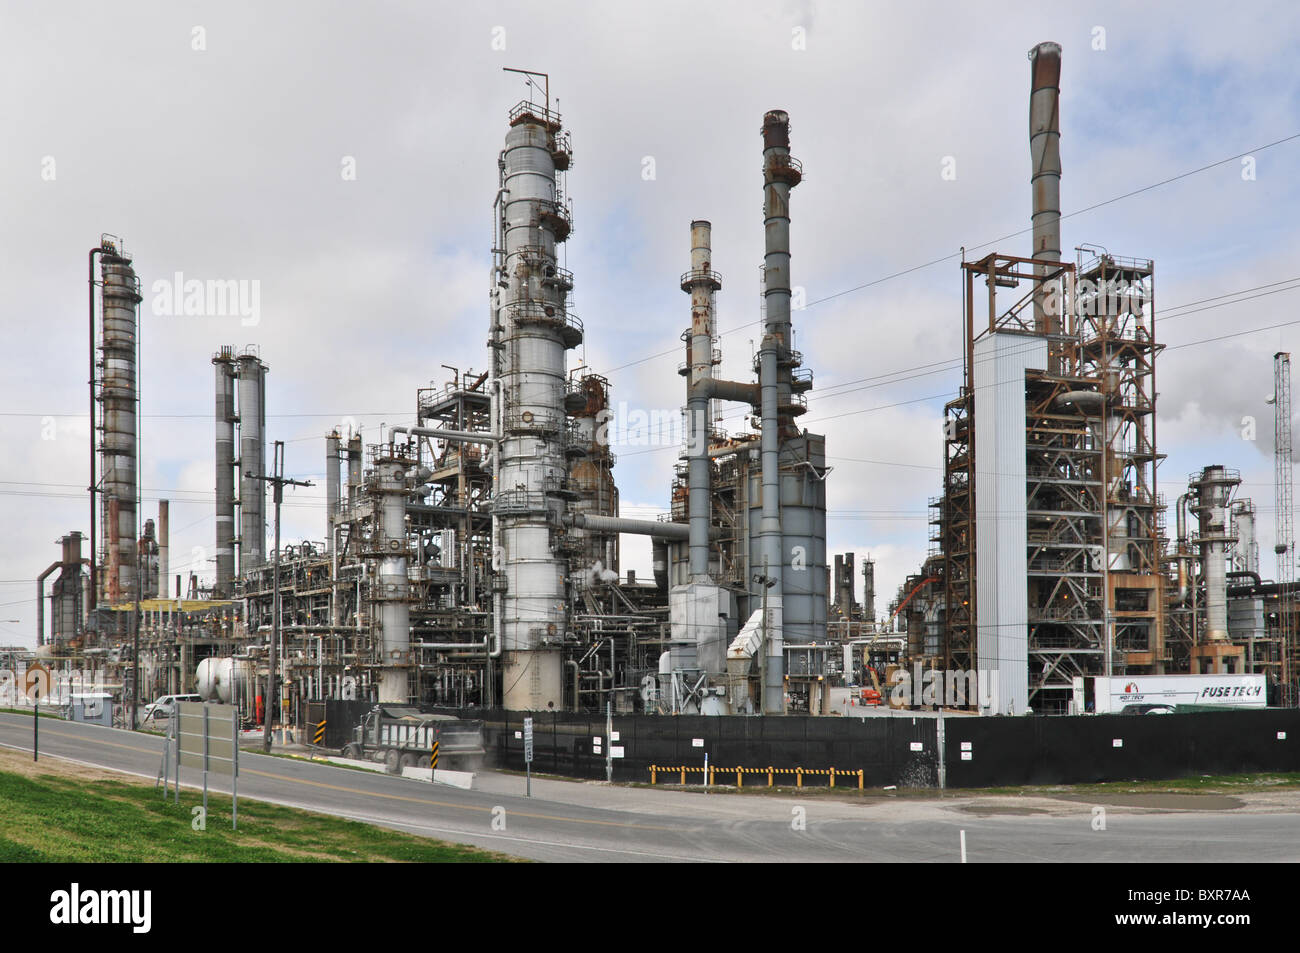 Oil refinery on Mississippi River, New Orleans, Louisiana